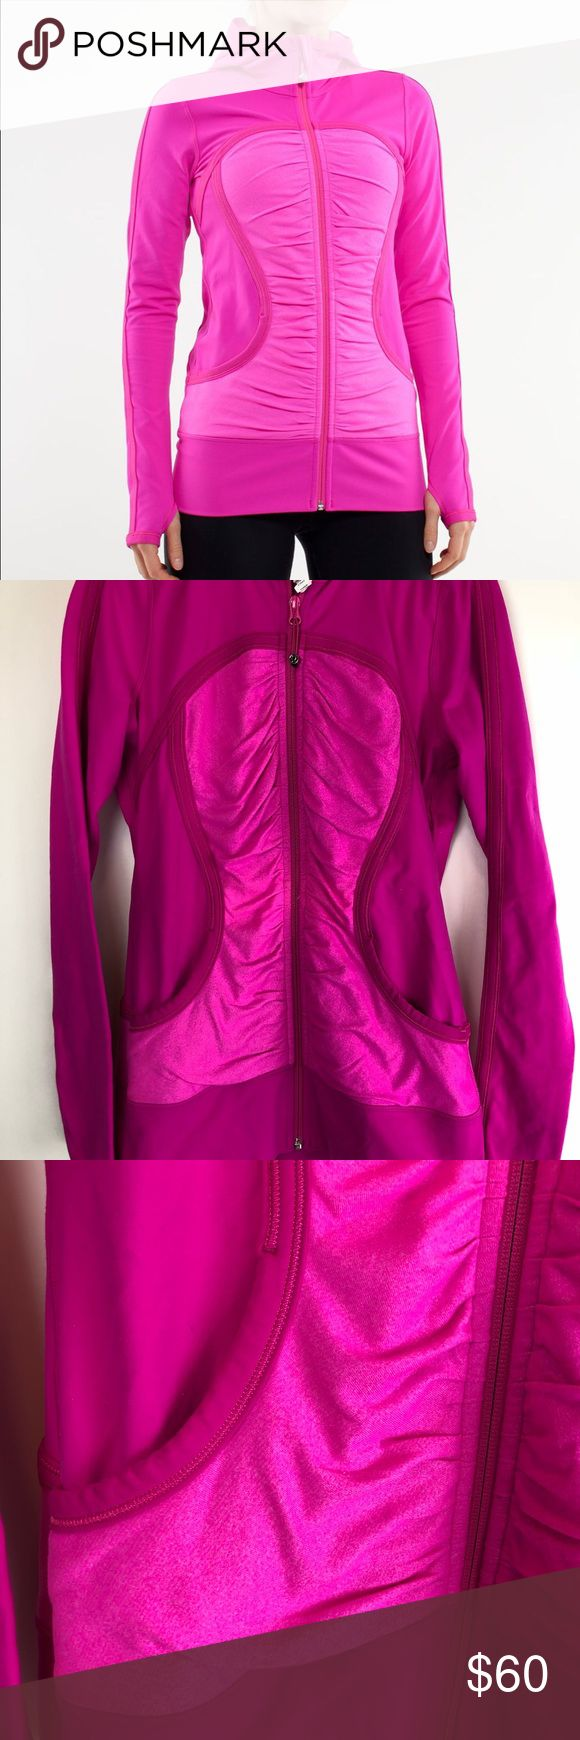 """Lululemon Pink Pure Balance Define Hoodie Jacket Excellent preowned Lululemon hooded jacket in size 8. Size tag still attached. Hot pink, fuschia.  29"""" total length  17"""" armpit to armpit lululemon athletica Jackets & Coats"""